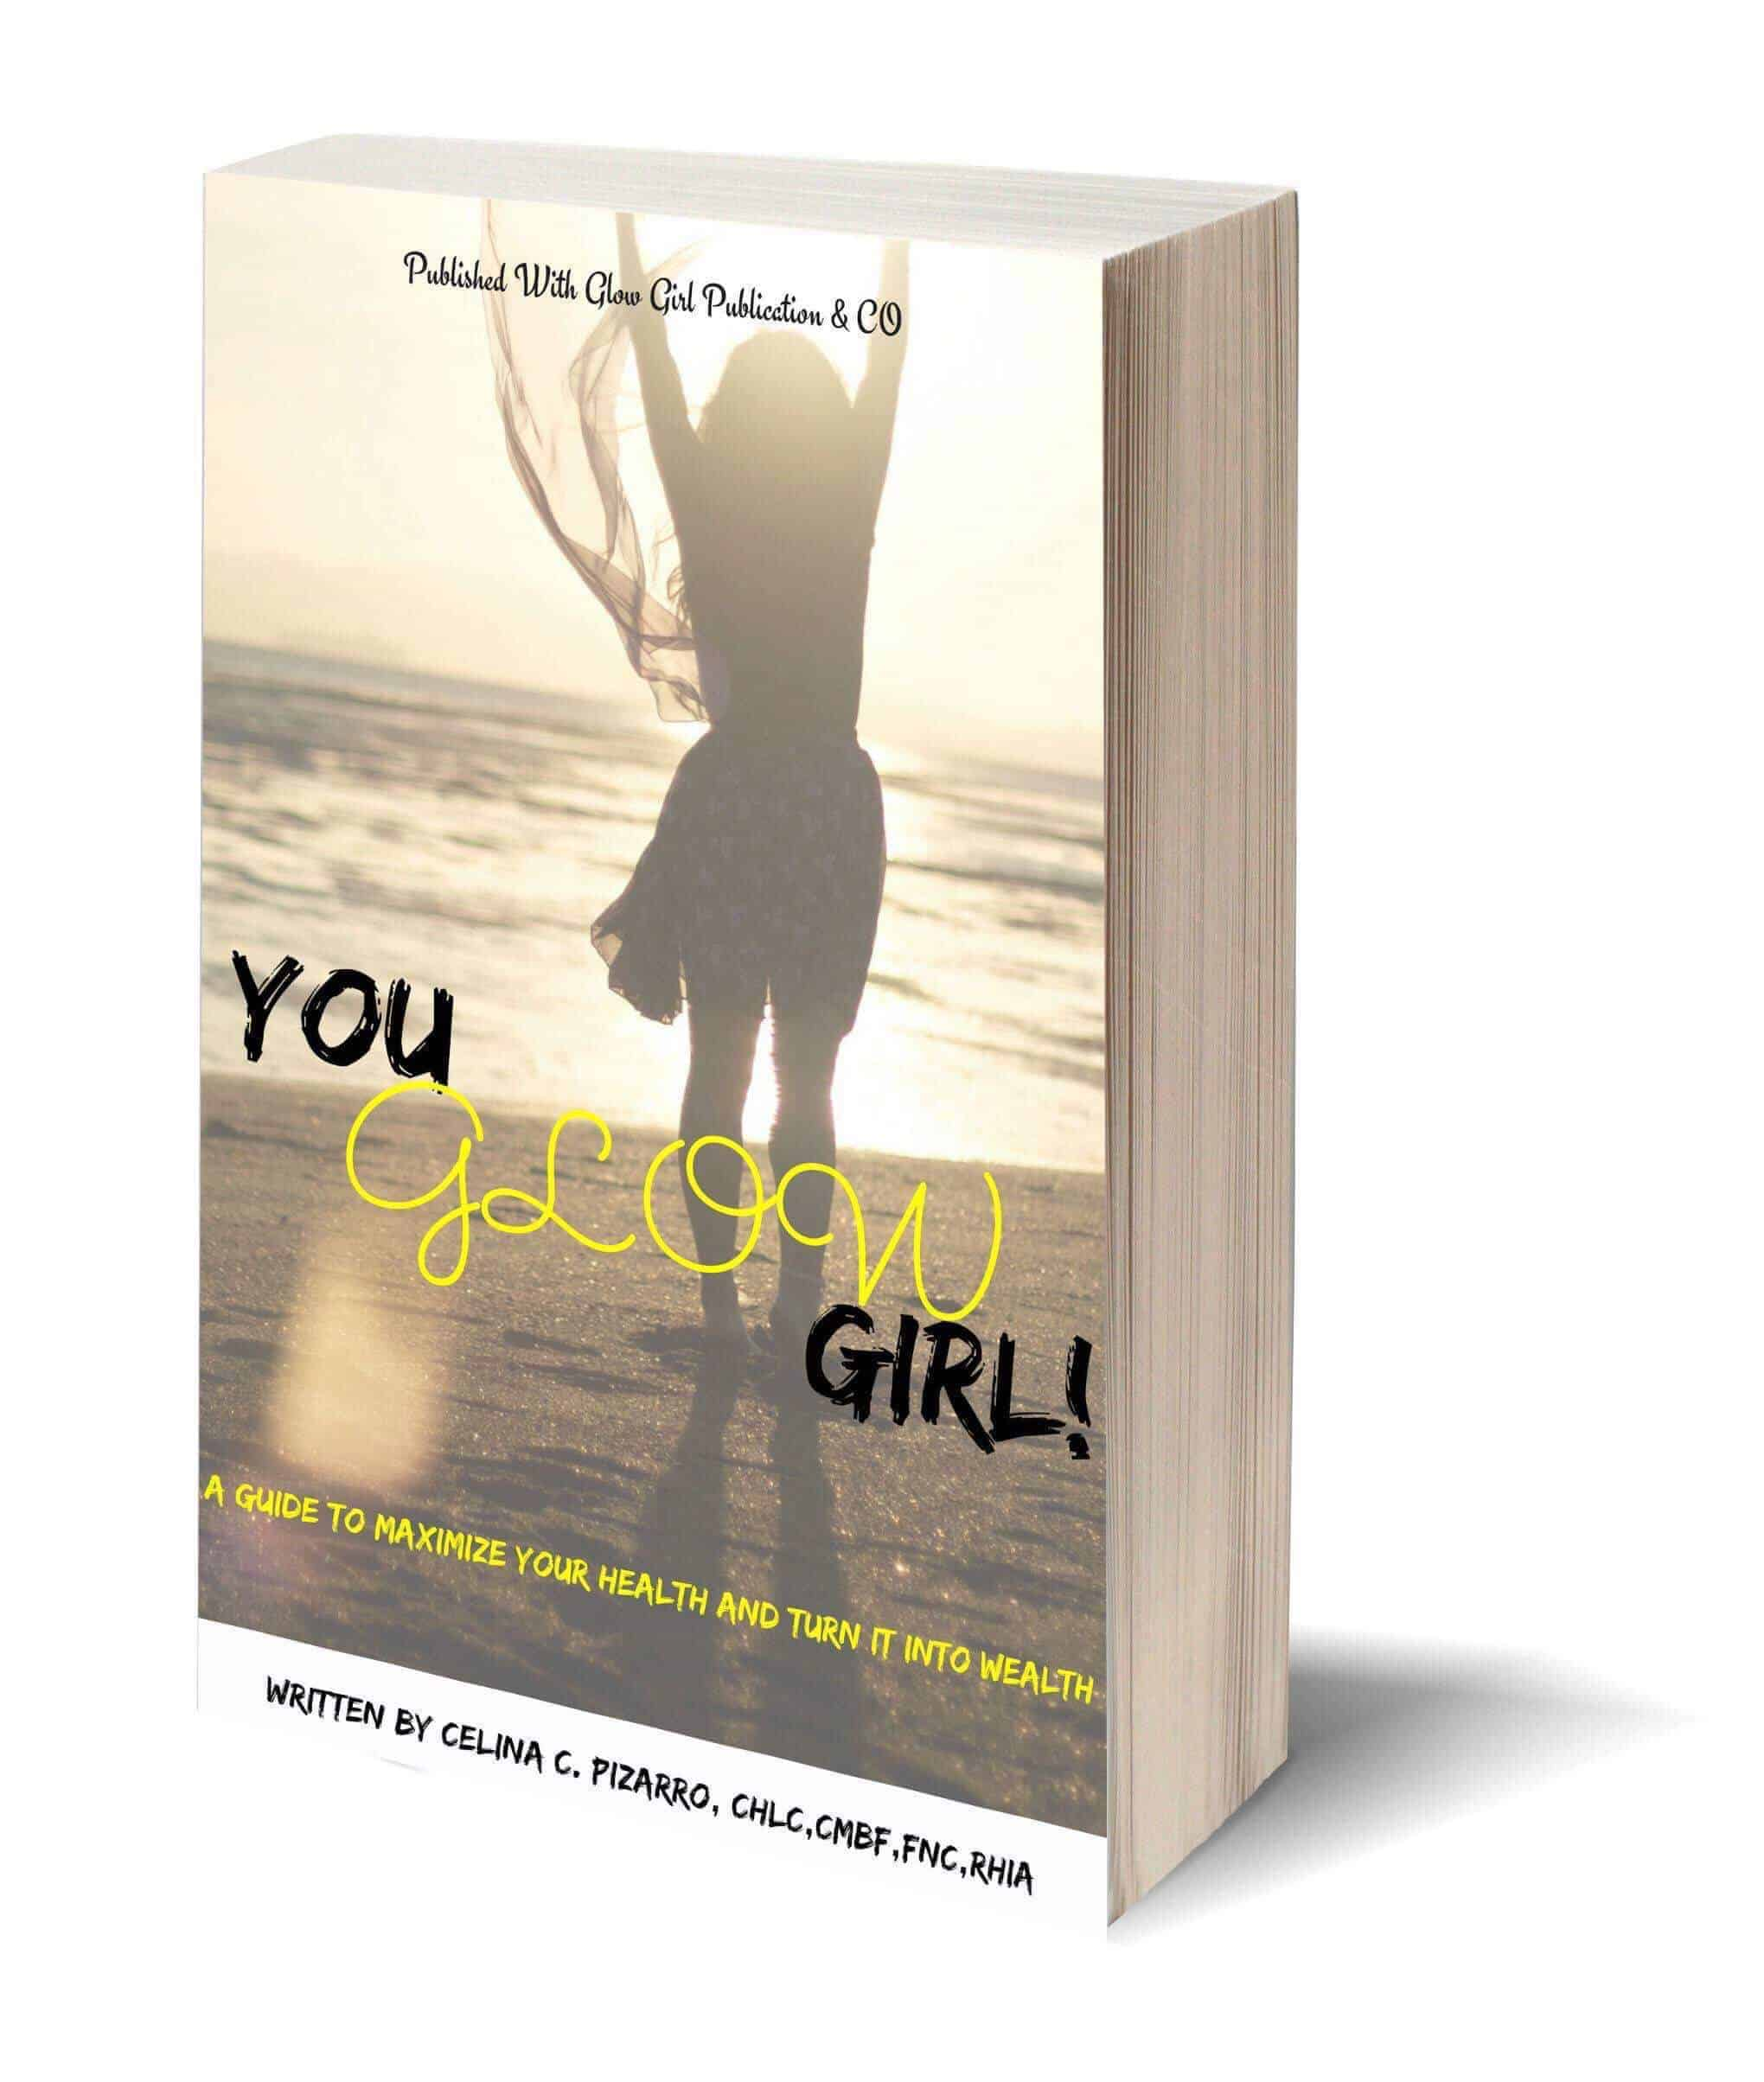 """You GLOW Girl!"", A Women's Guide to Maximize your Health and Turn it into Wealth"